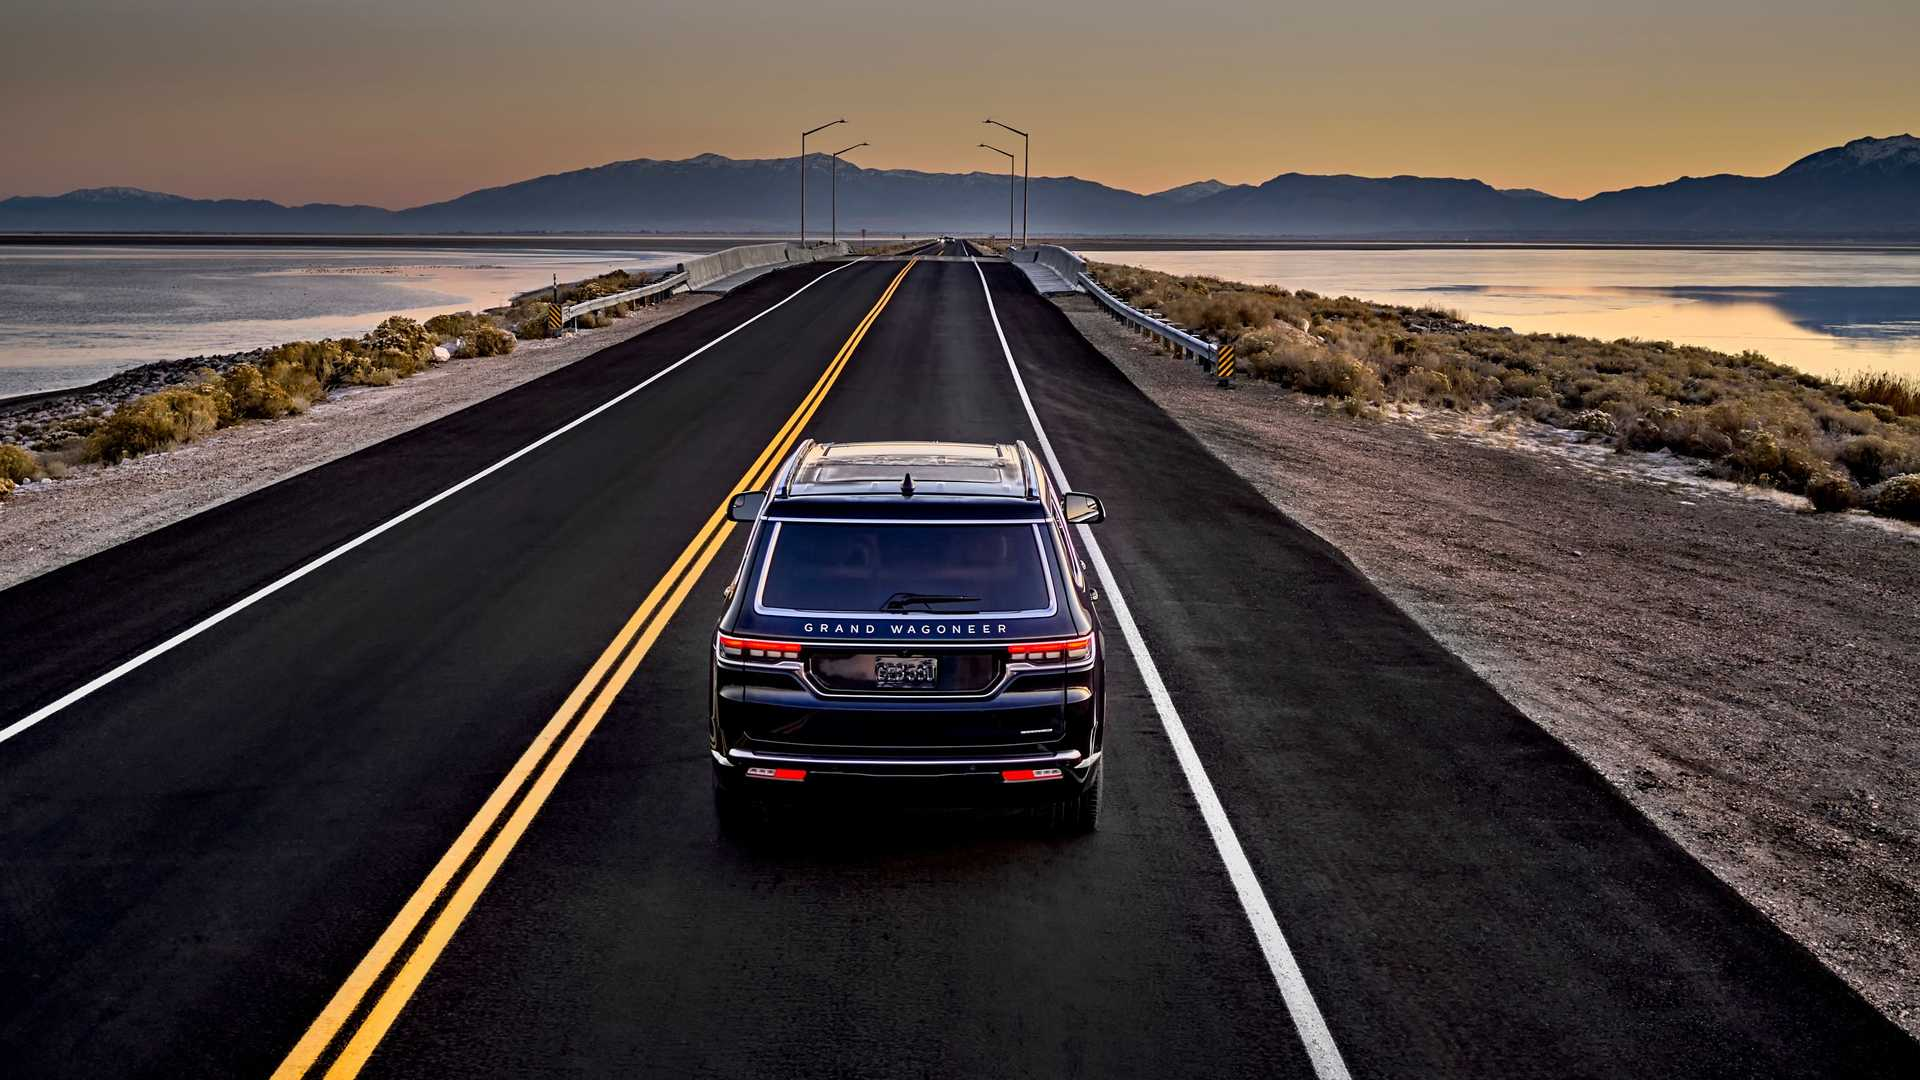 2022-jeep-grand-wagoneer-exterior-rear-view